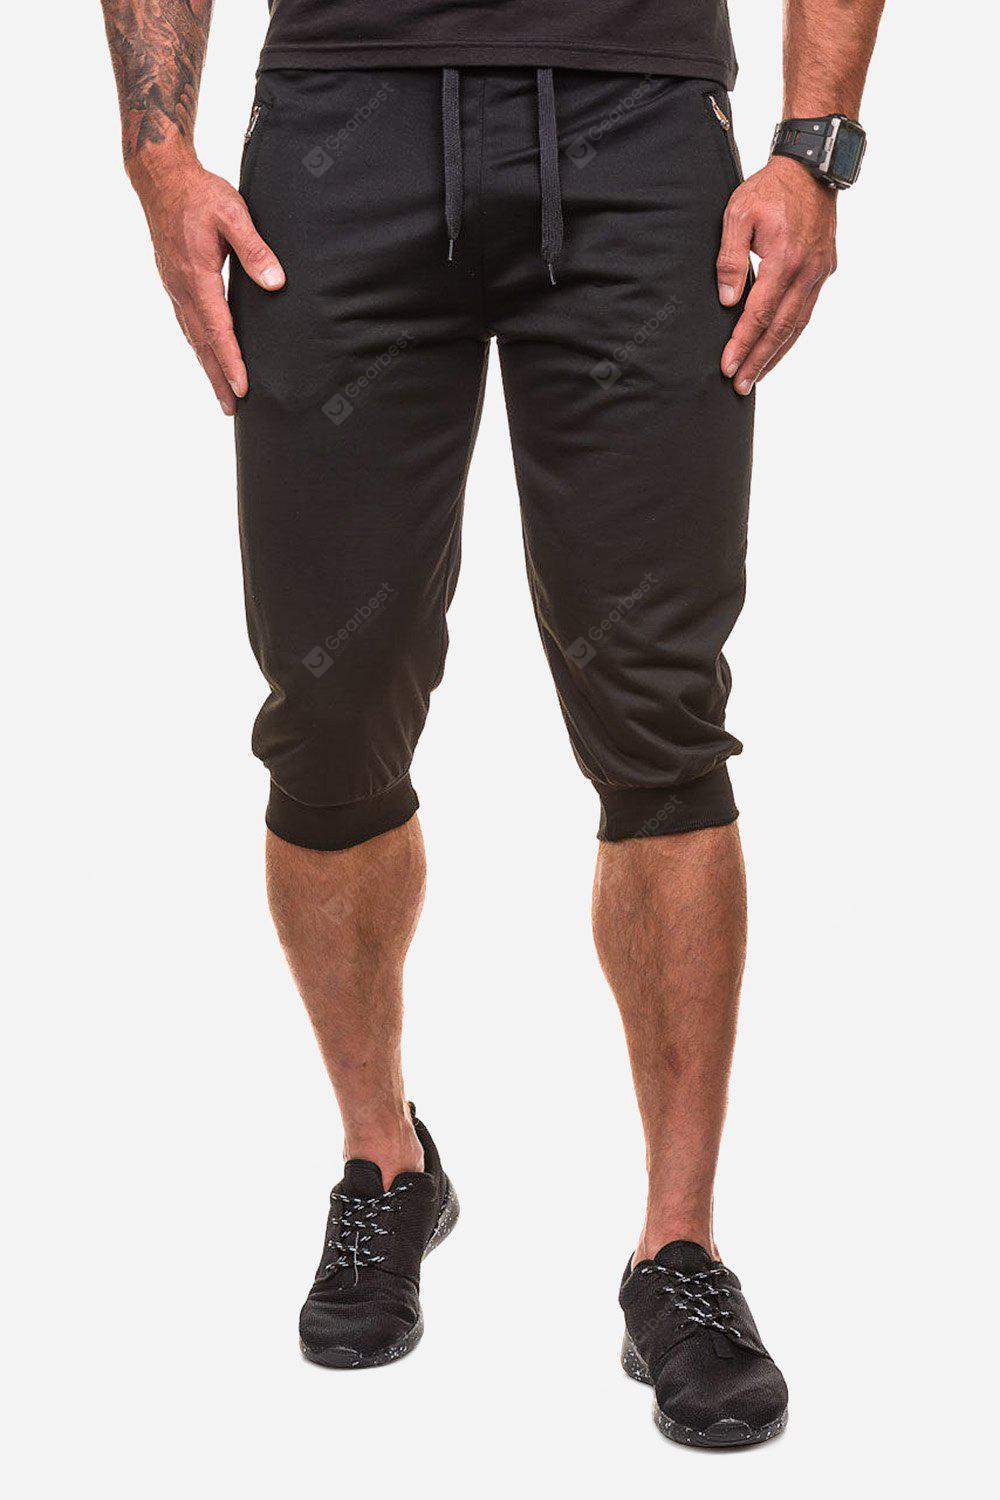 Männer Casual Classic Athletic Sport Shorts